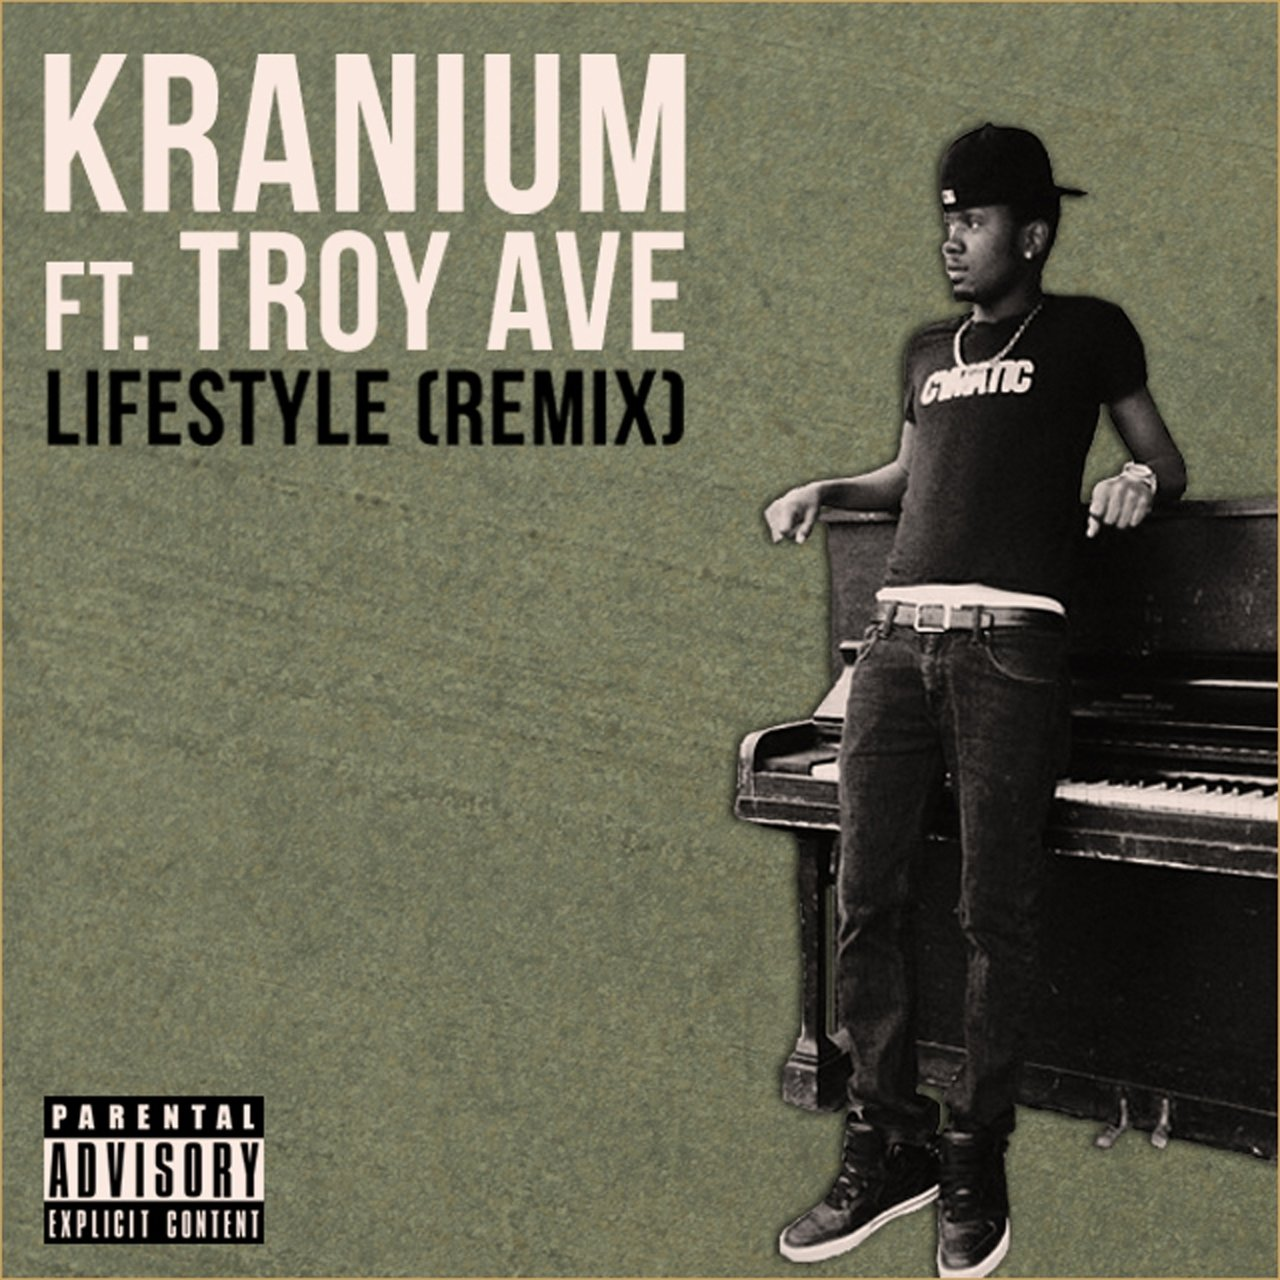 Lifestyle (feat. Troy Ave) (Remix) - Single